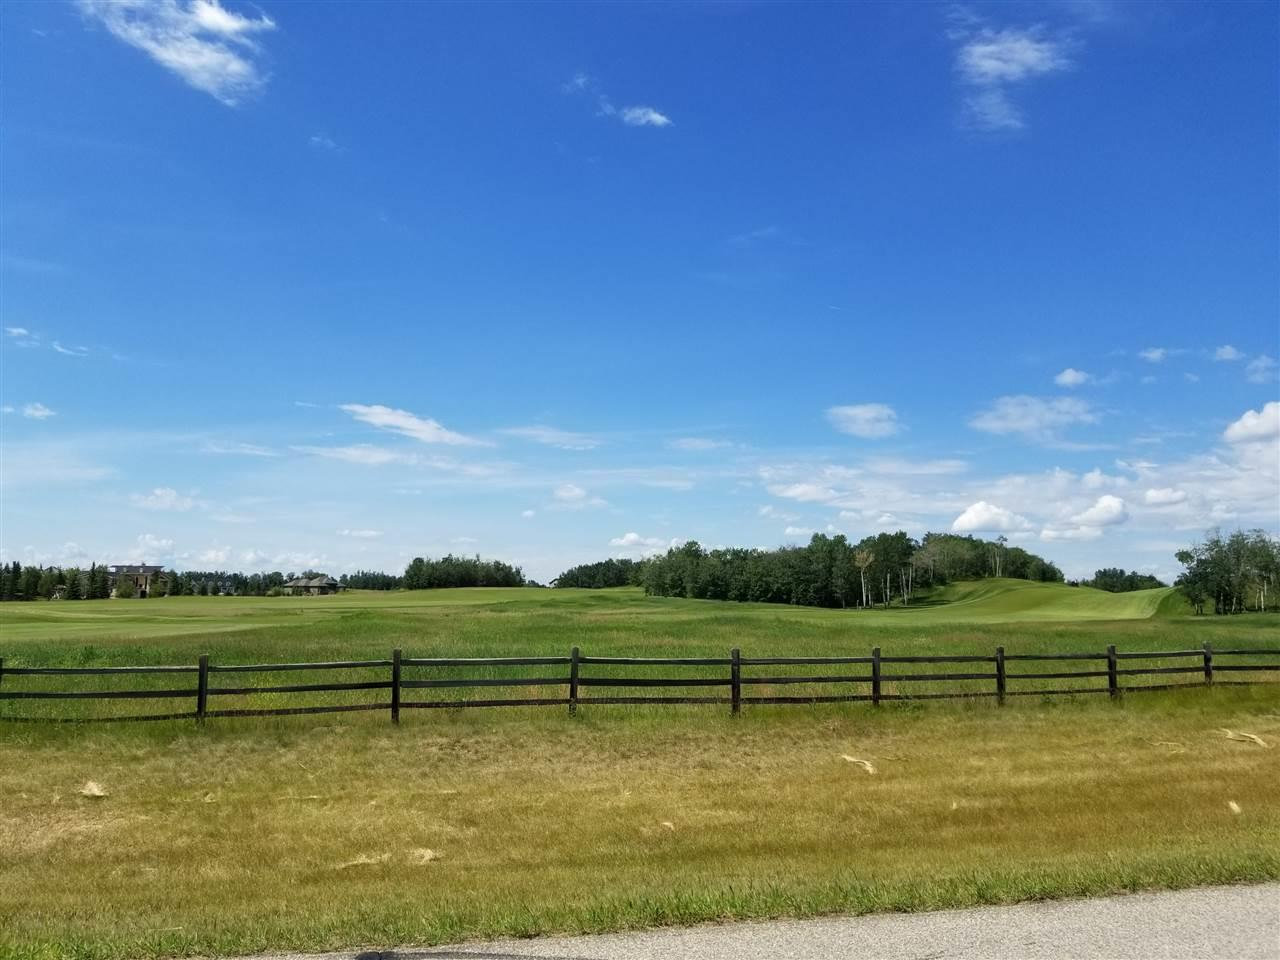 59 25527 Twp Rd 511 A, Rural Parkland County, Alberta  T7Y 1A8 - Photo 4 - E4235766